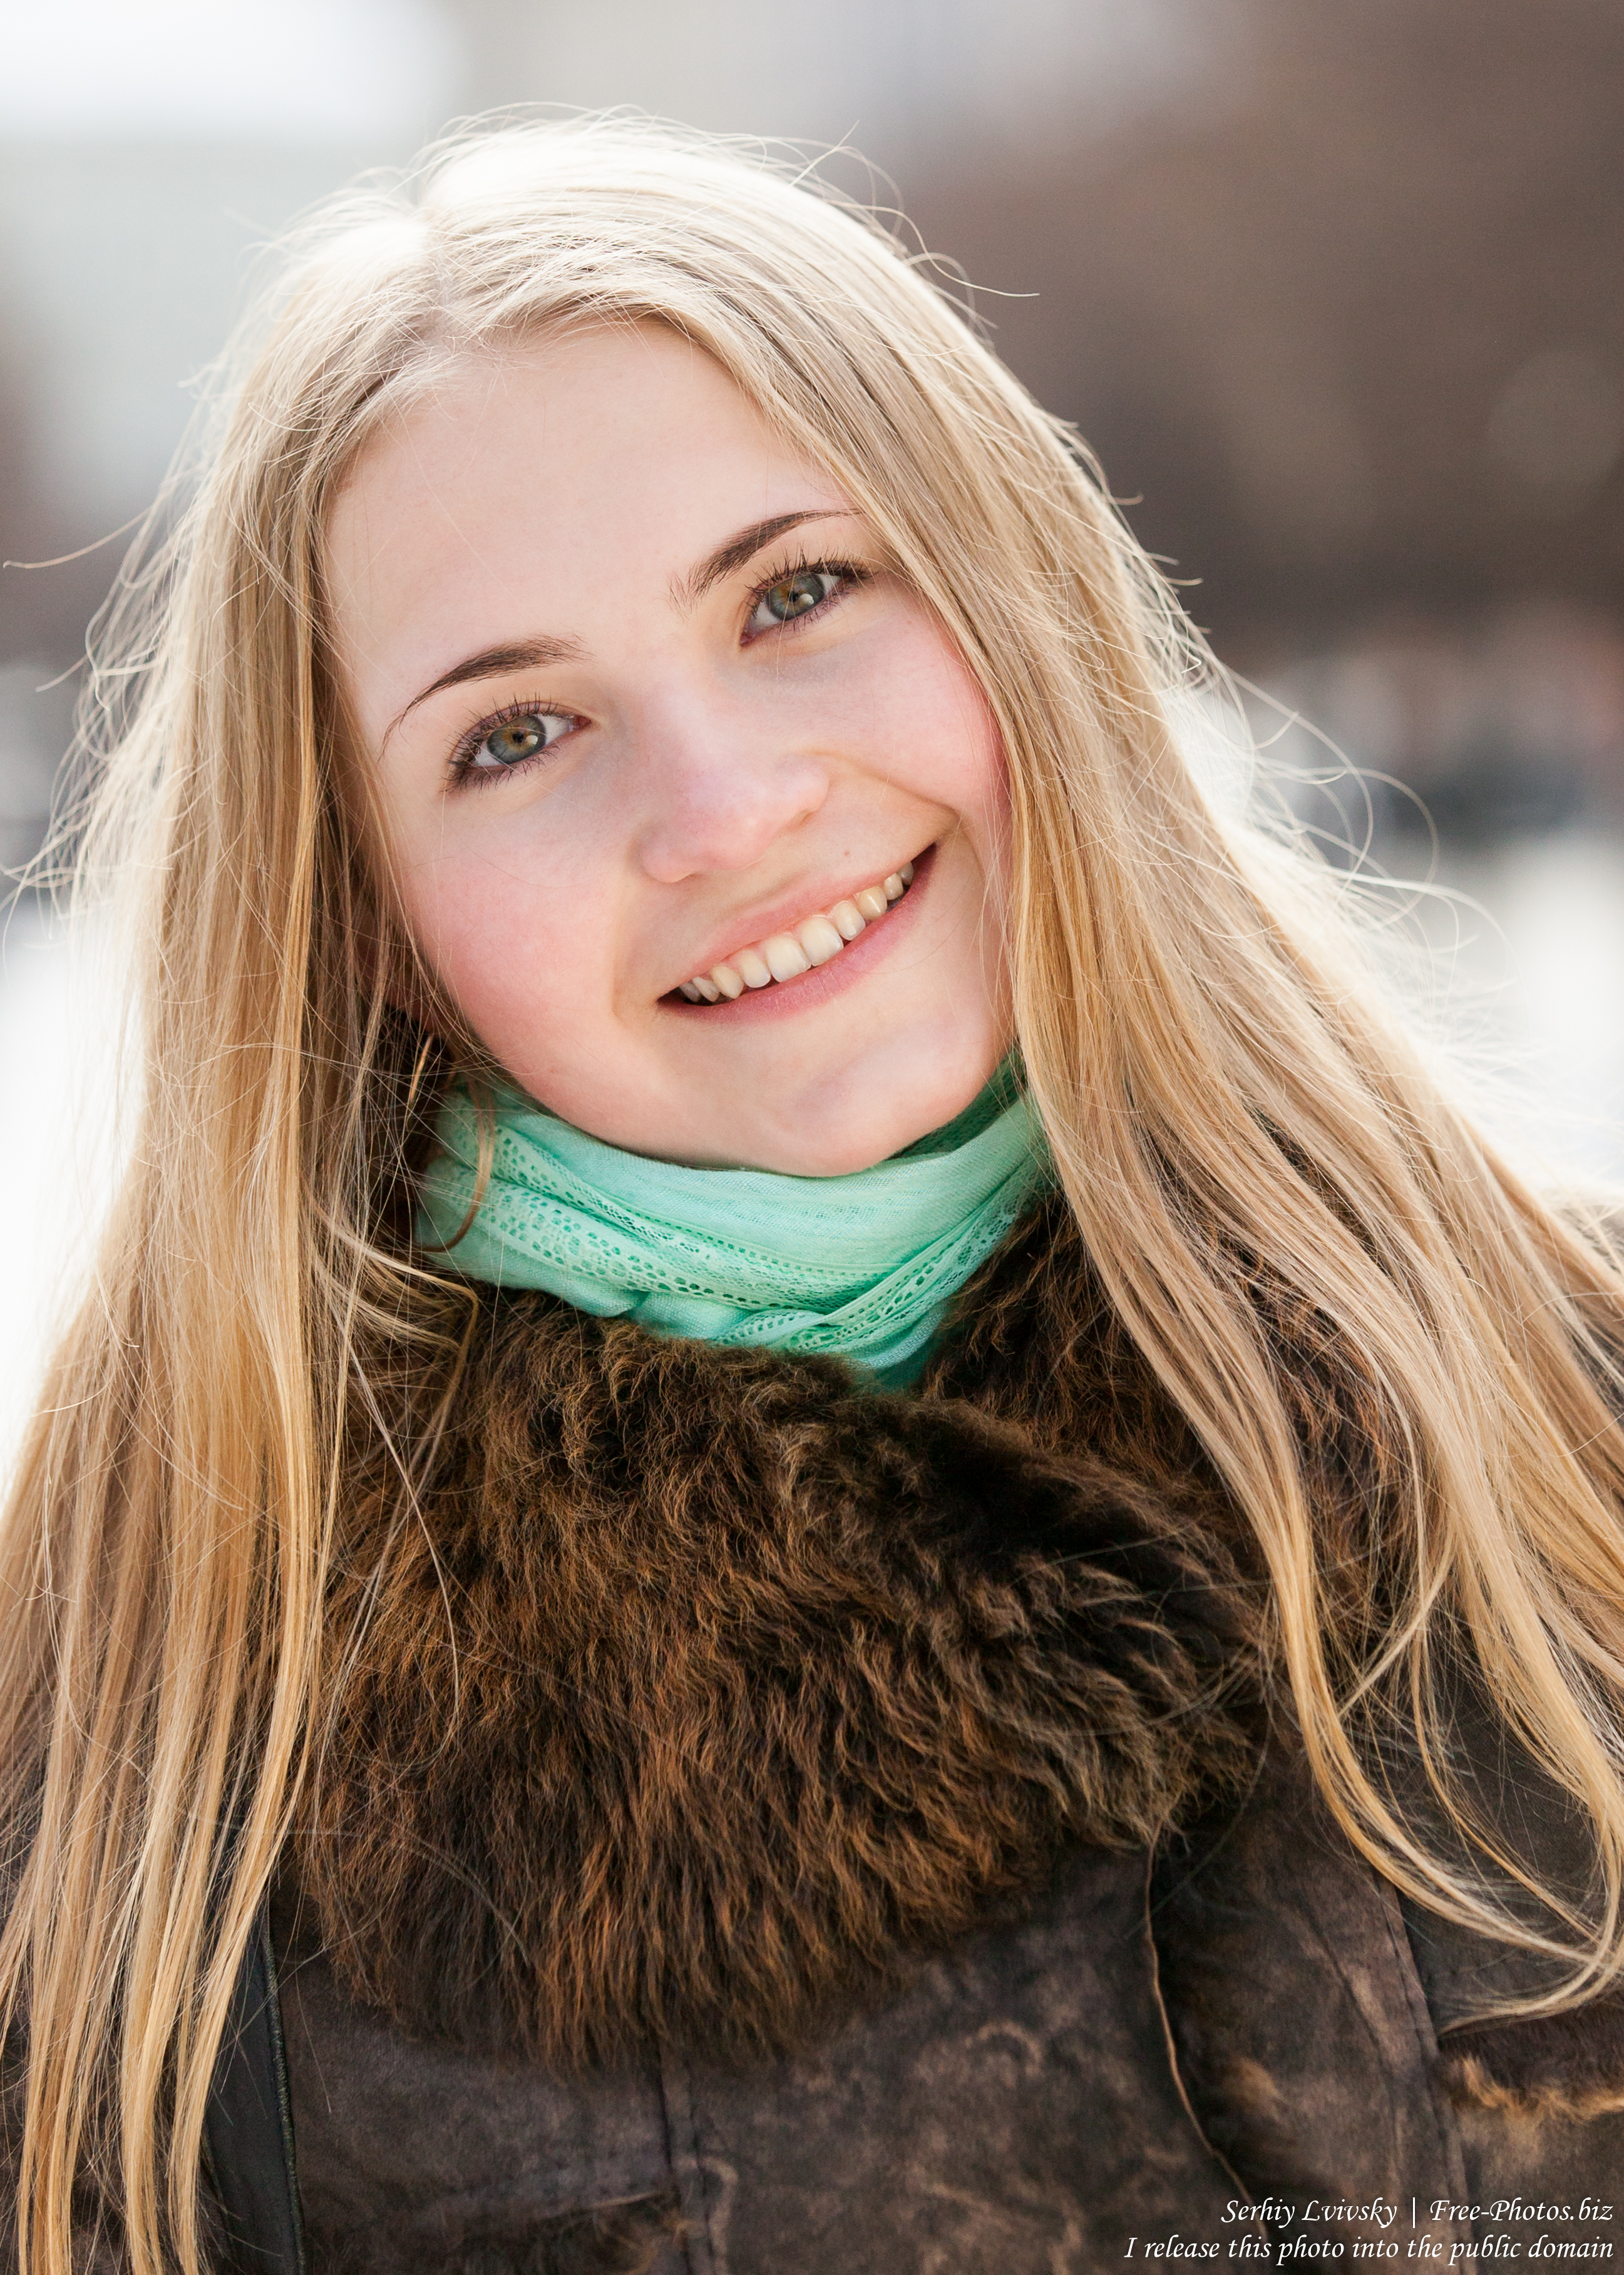 a beautiful 19-year-old Catholic blond girl photographed in February 2015, picture 7